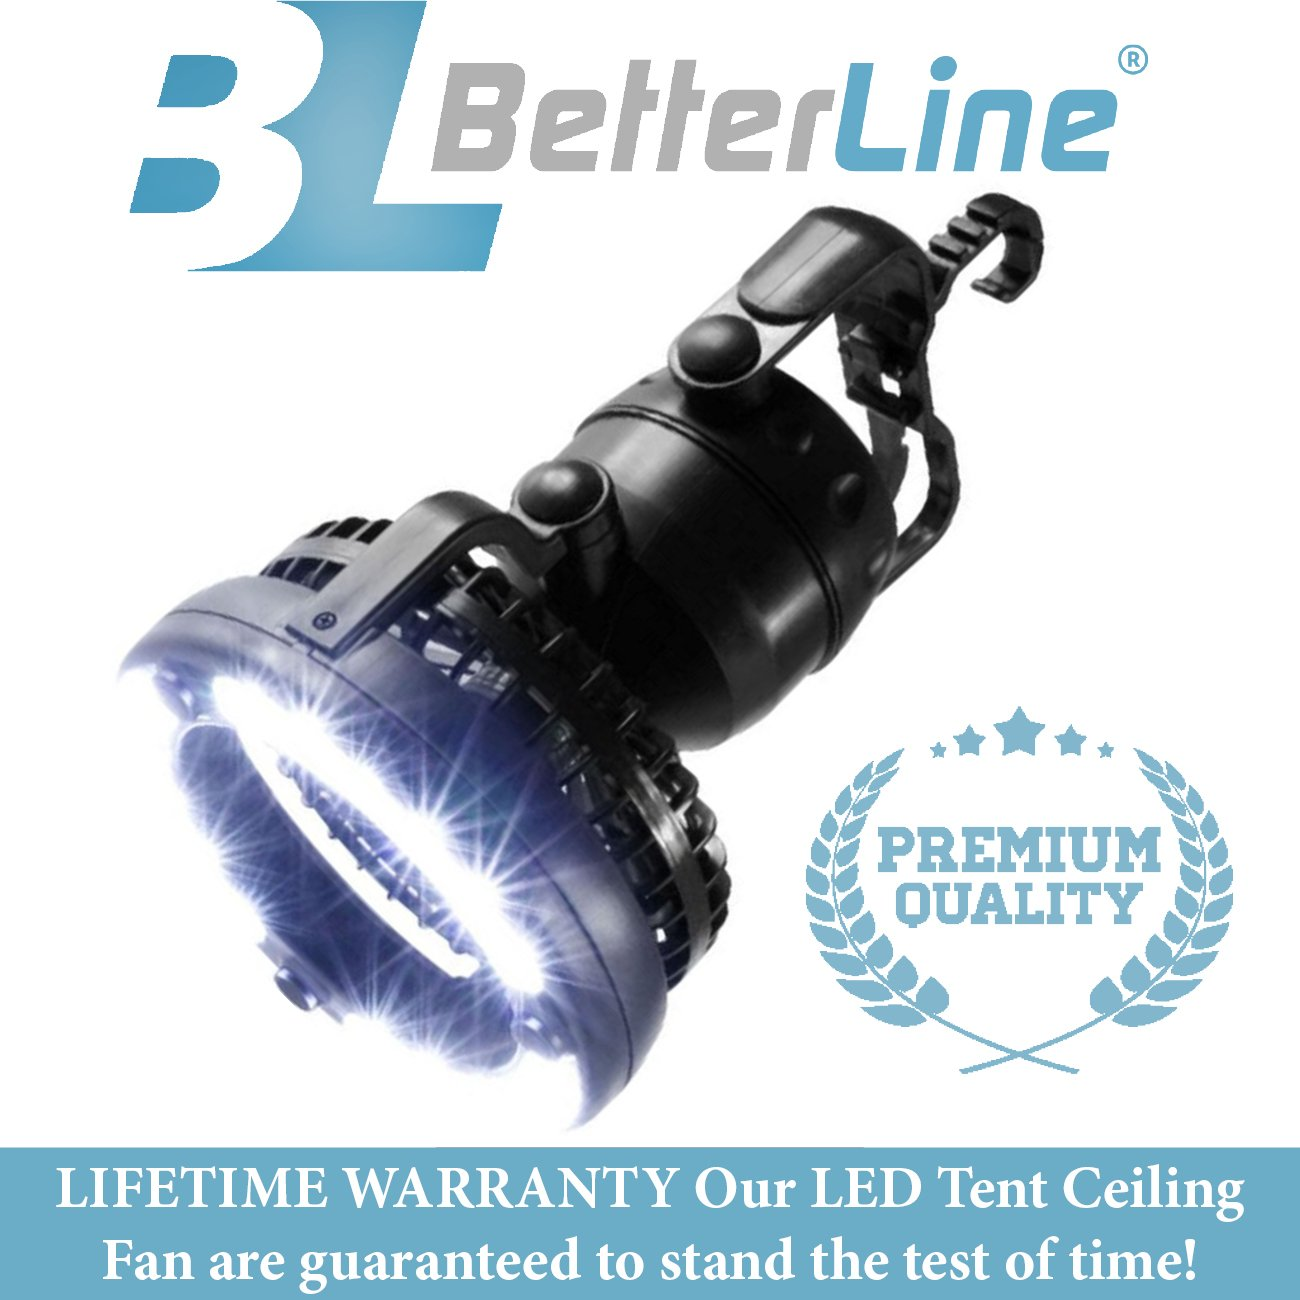 BETTERLINE Happy Camper 2-in-1 LED Tent Ceiling Fan - Works as a Flashlight Lantern & Cooling Fan for Camping, Premium Materials and a Unique Designed